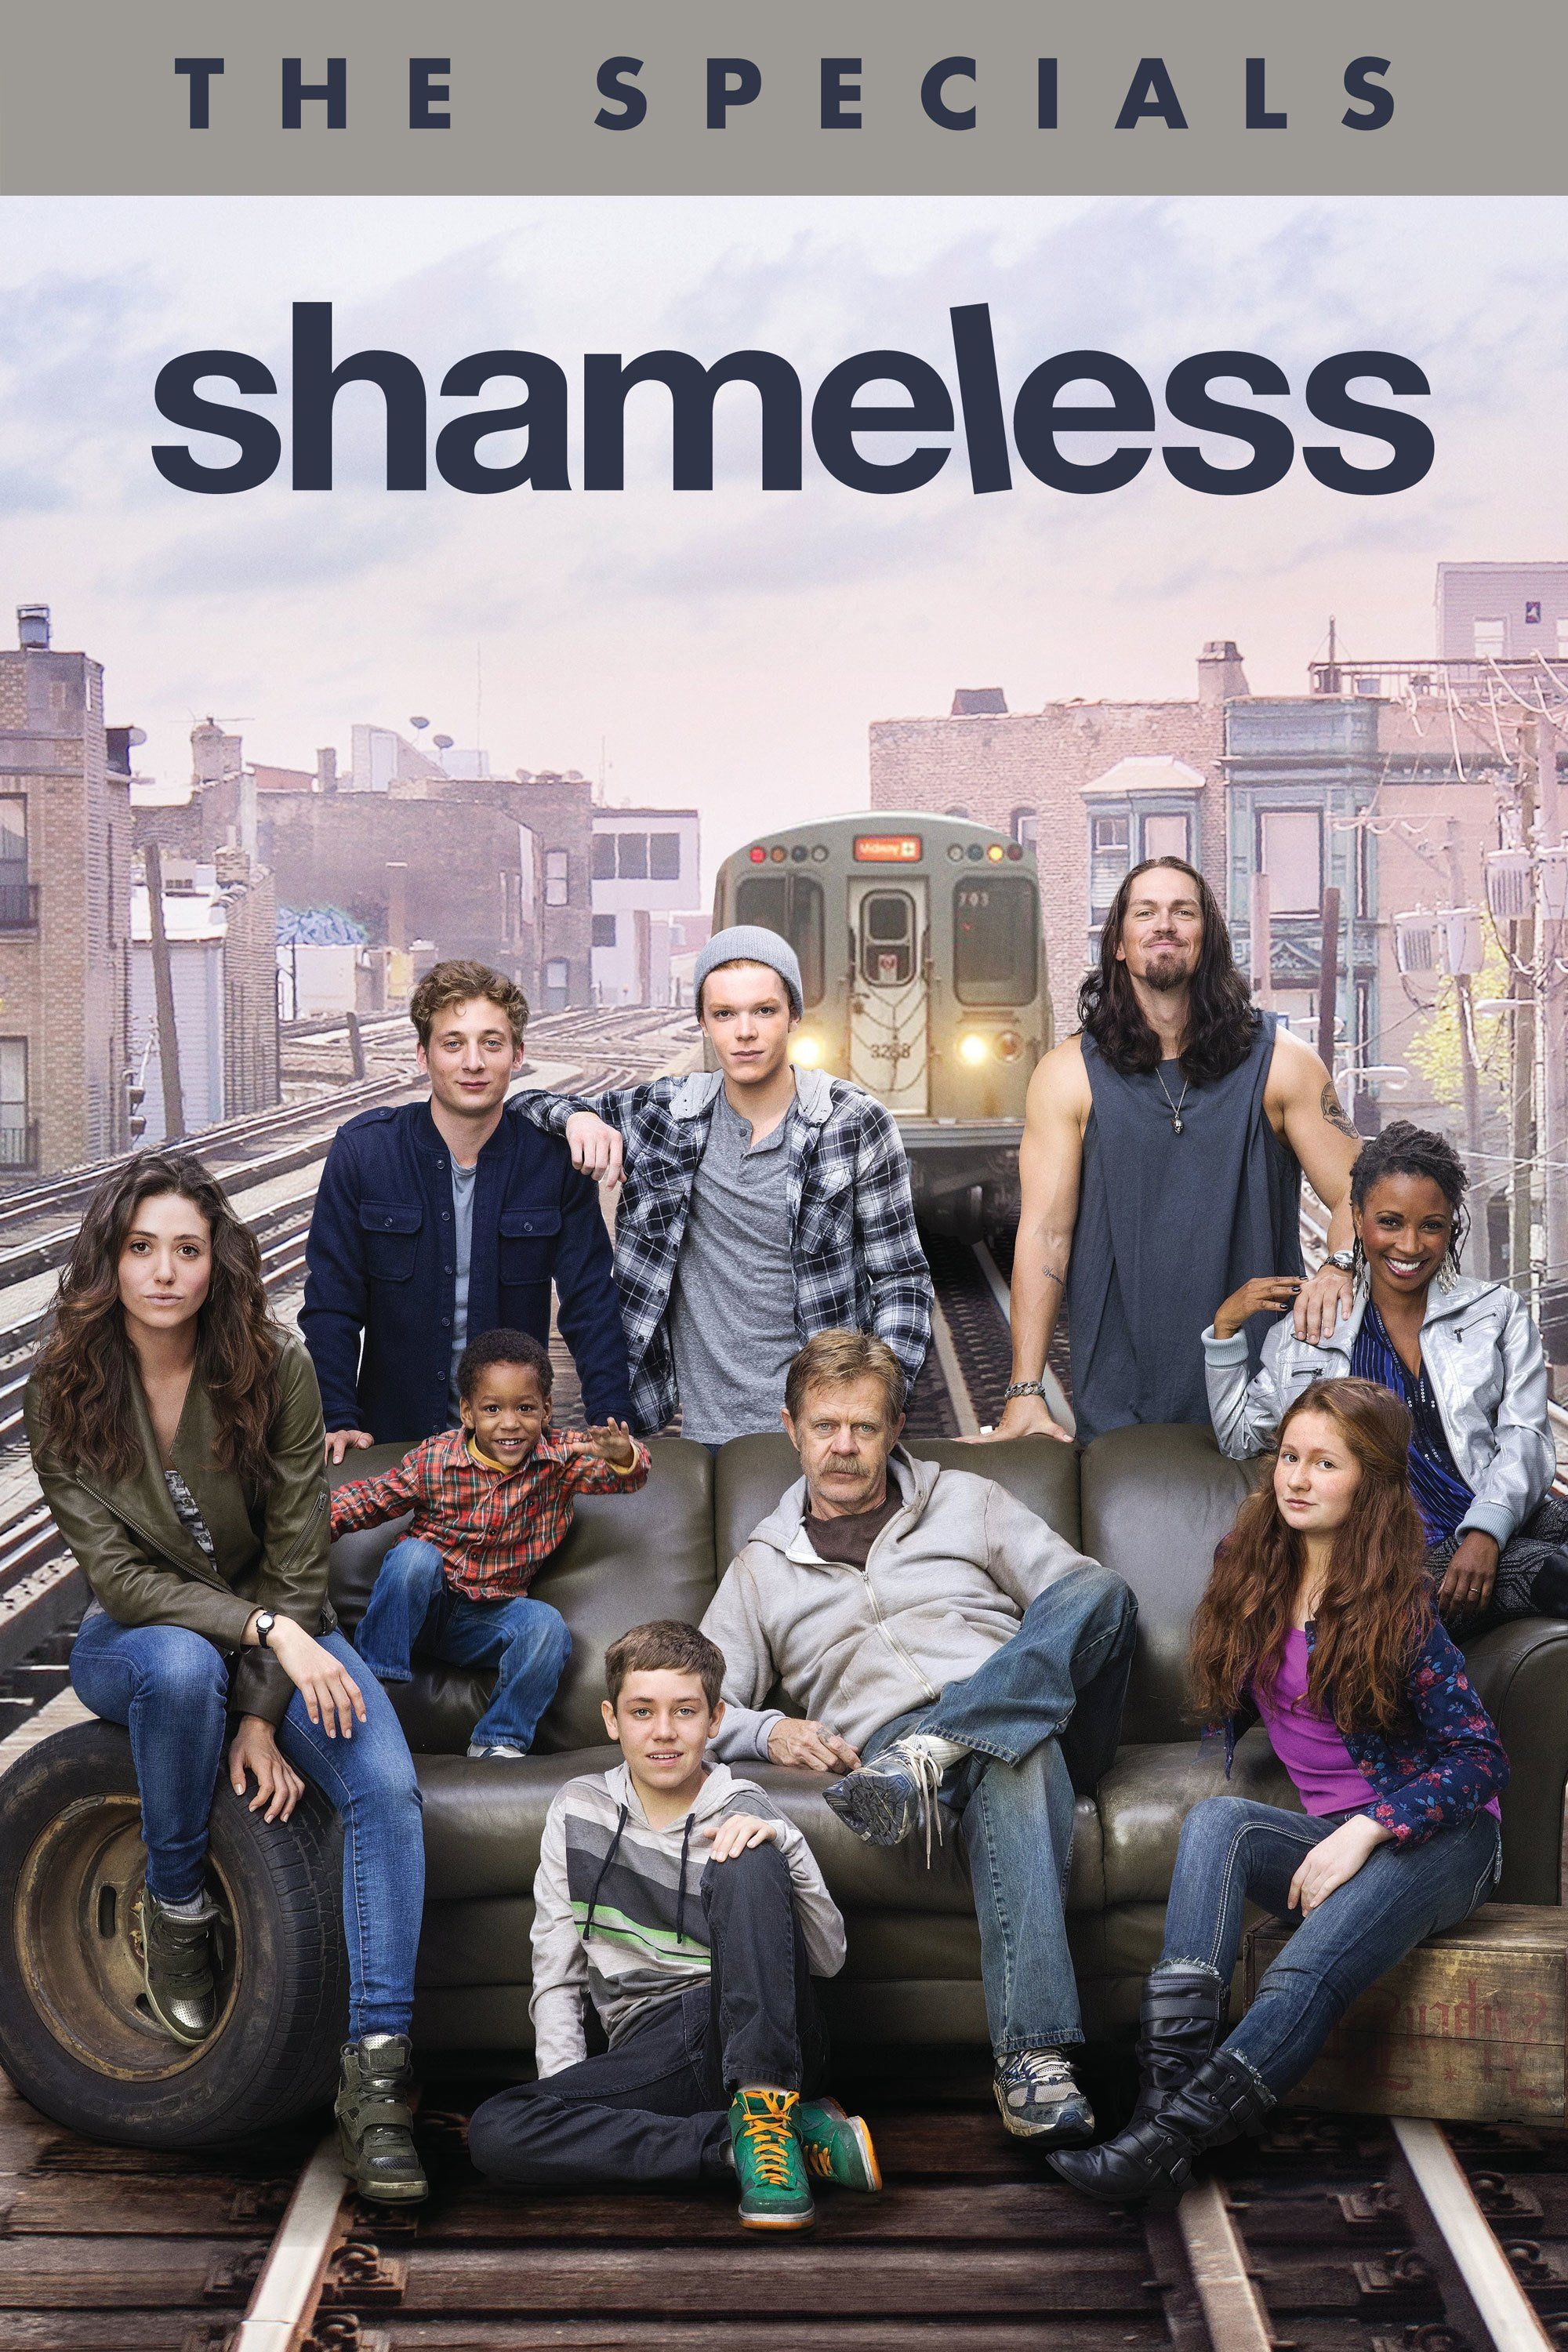 Shameless 2017 Wallpapers - Wallpaper Cave